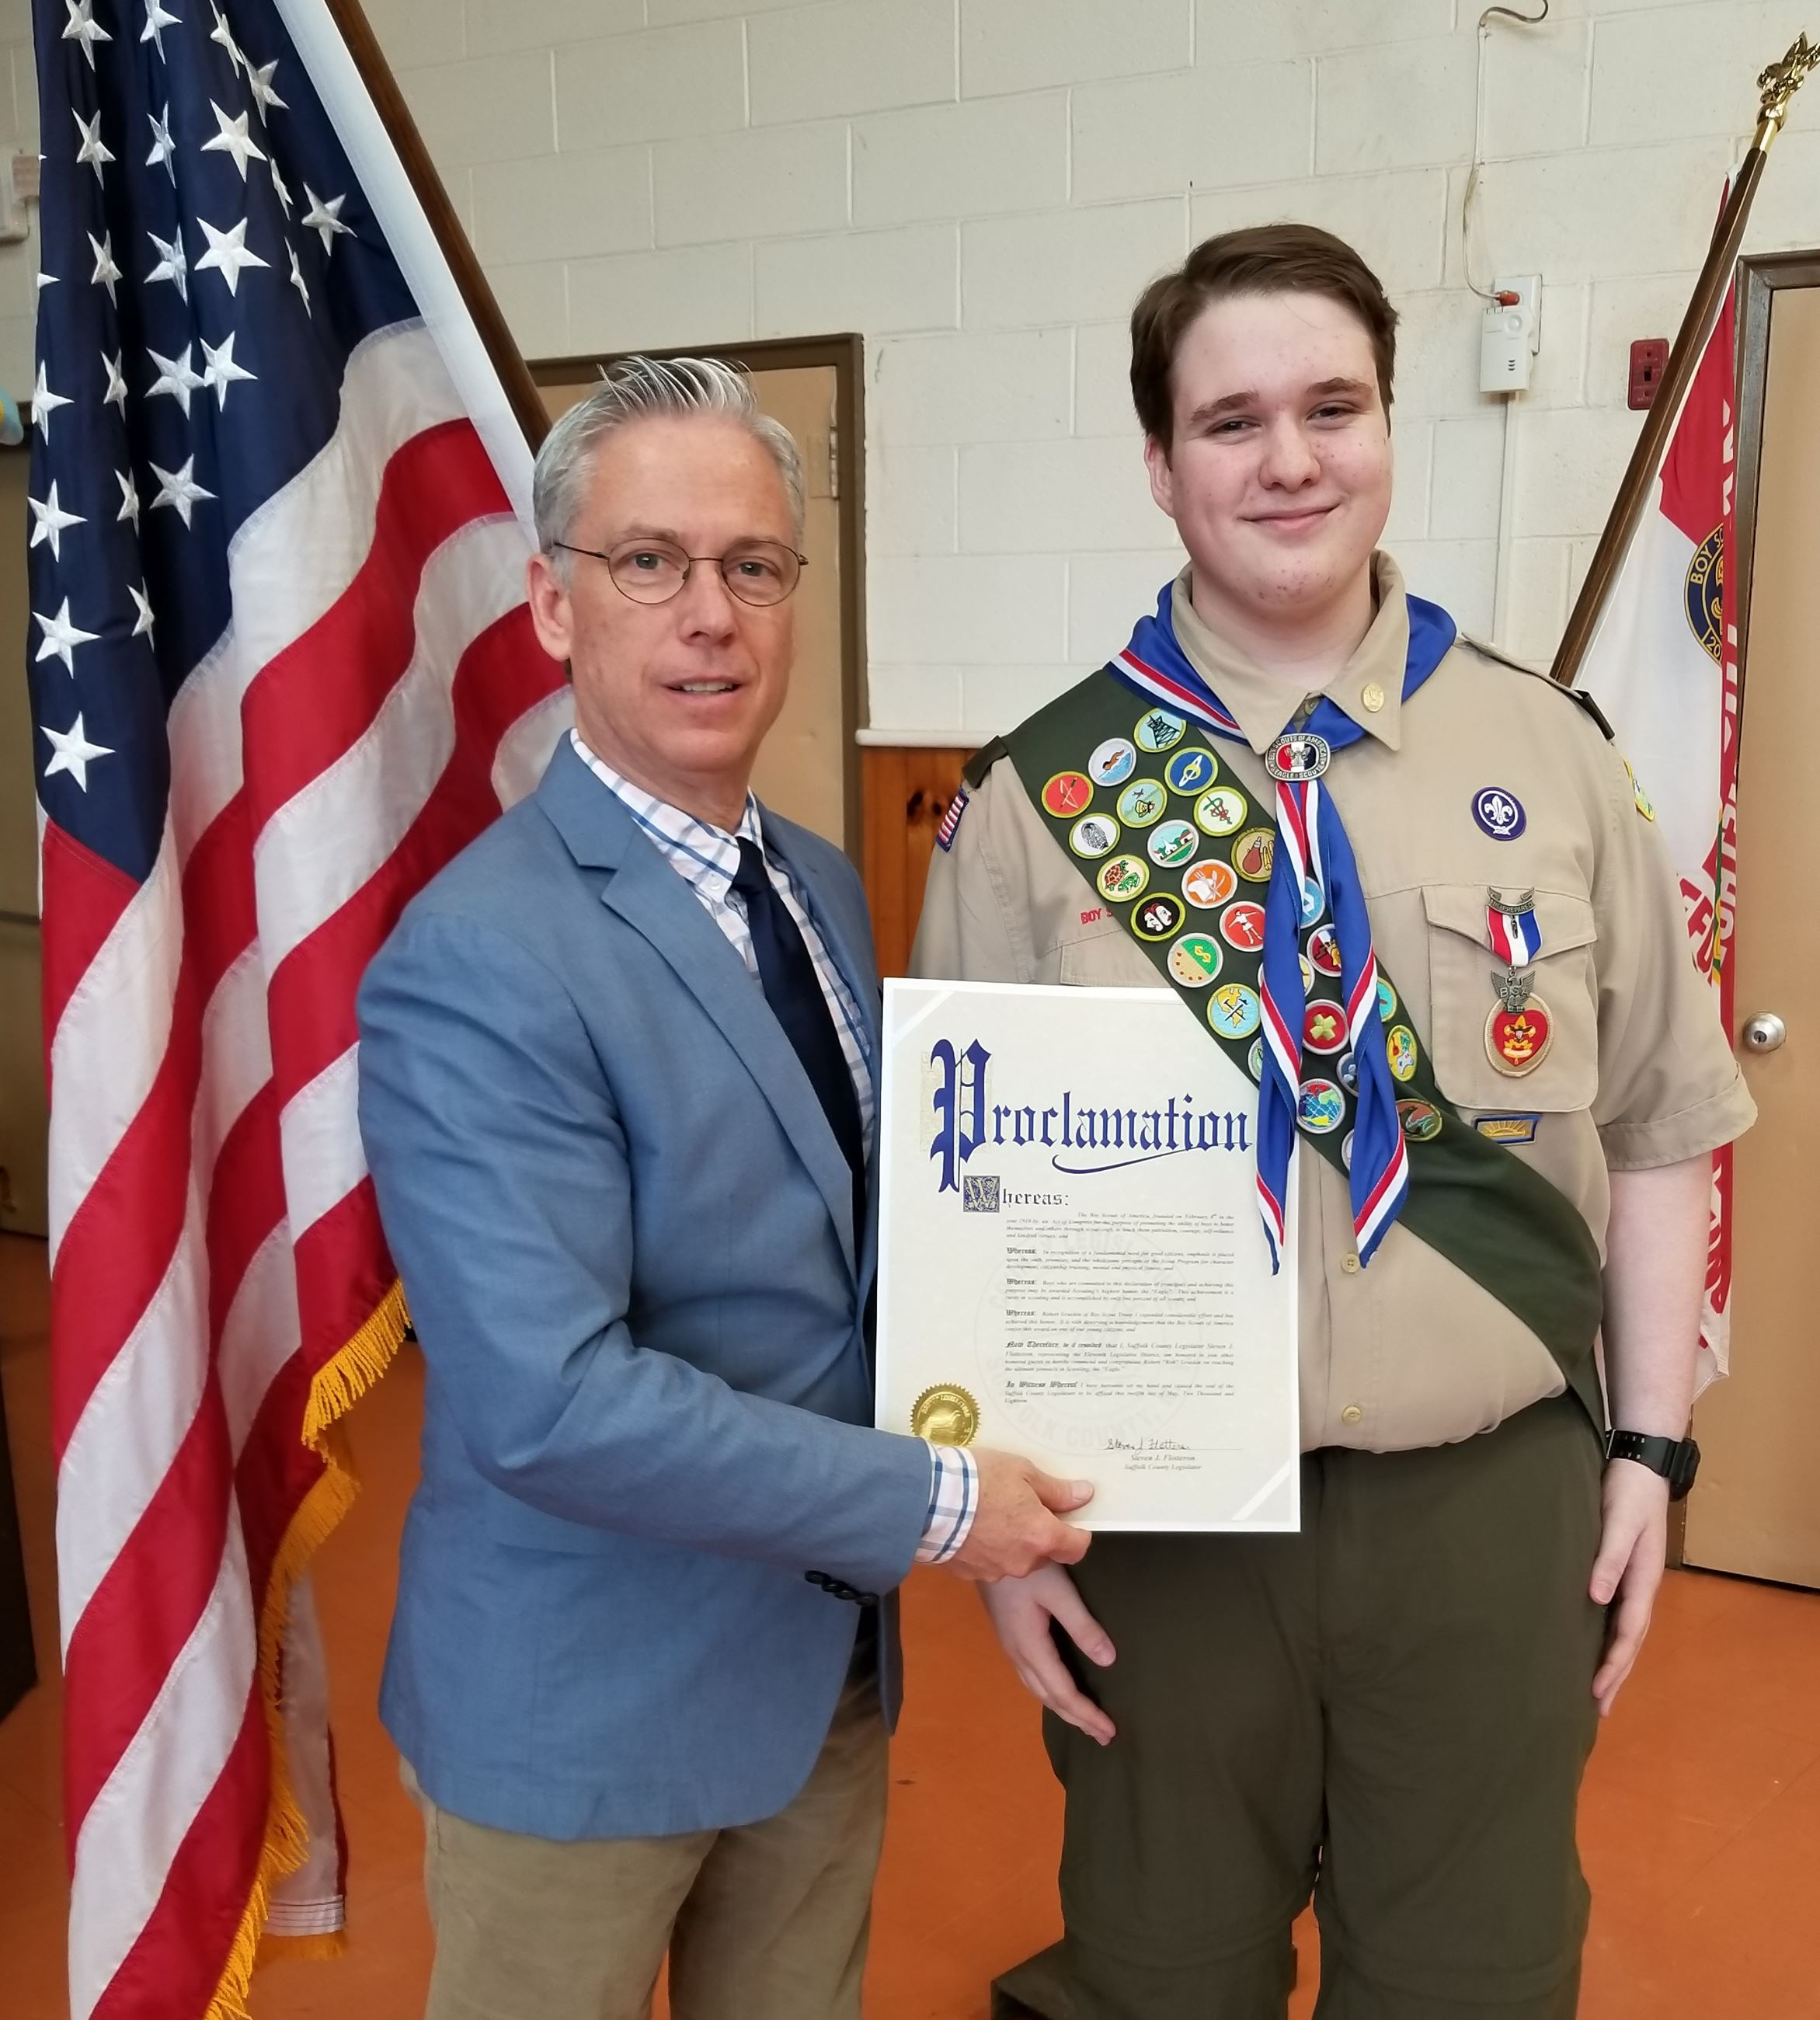 Eagle Scout Gruskin